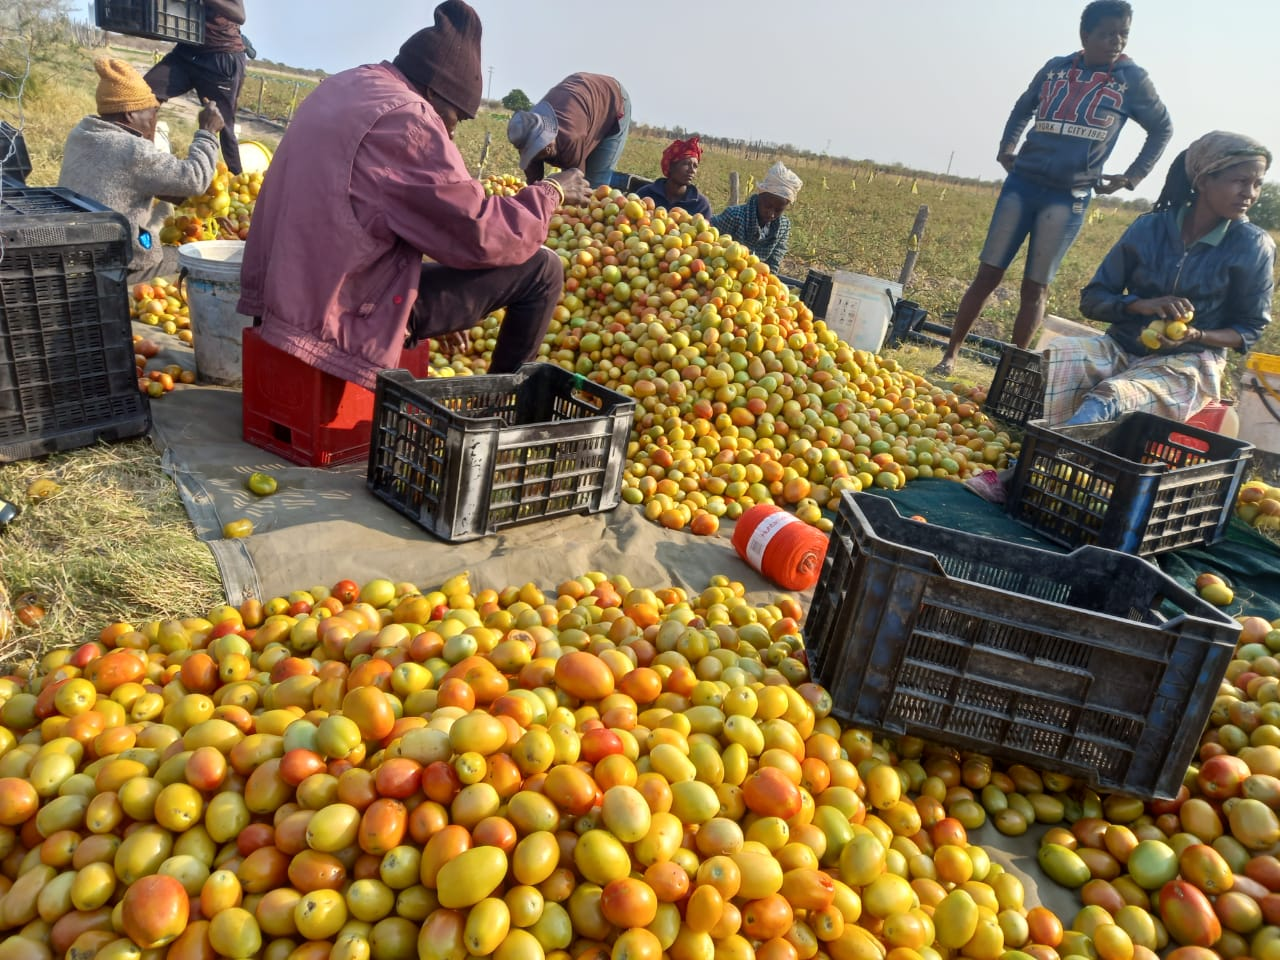 High production costs sink small-scale farmer